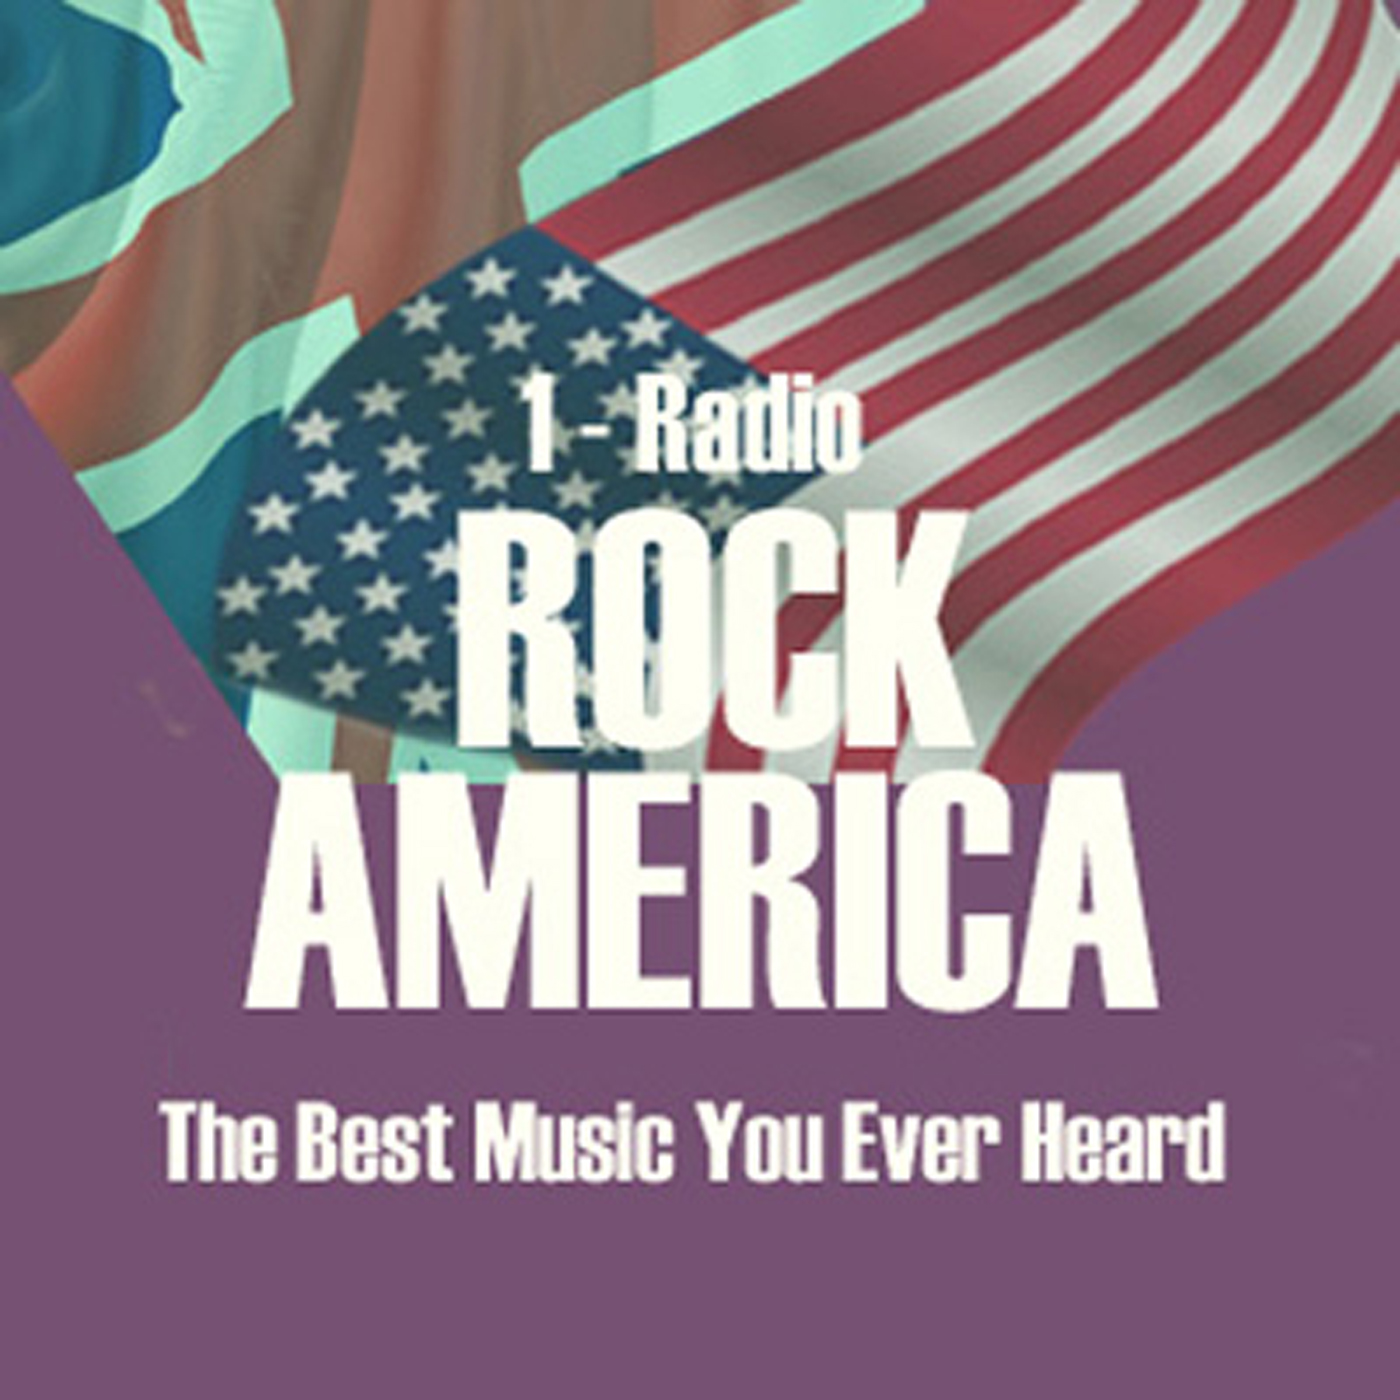 1-Radio ROCK AMERICA Podcast #1